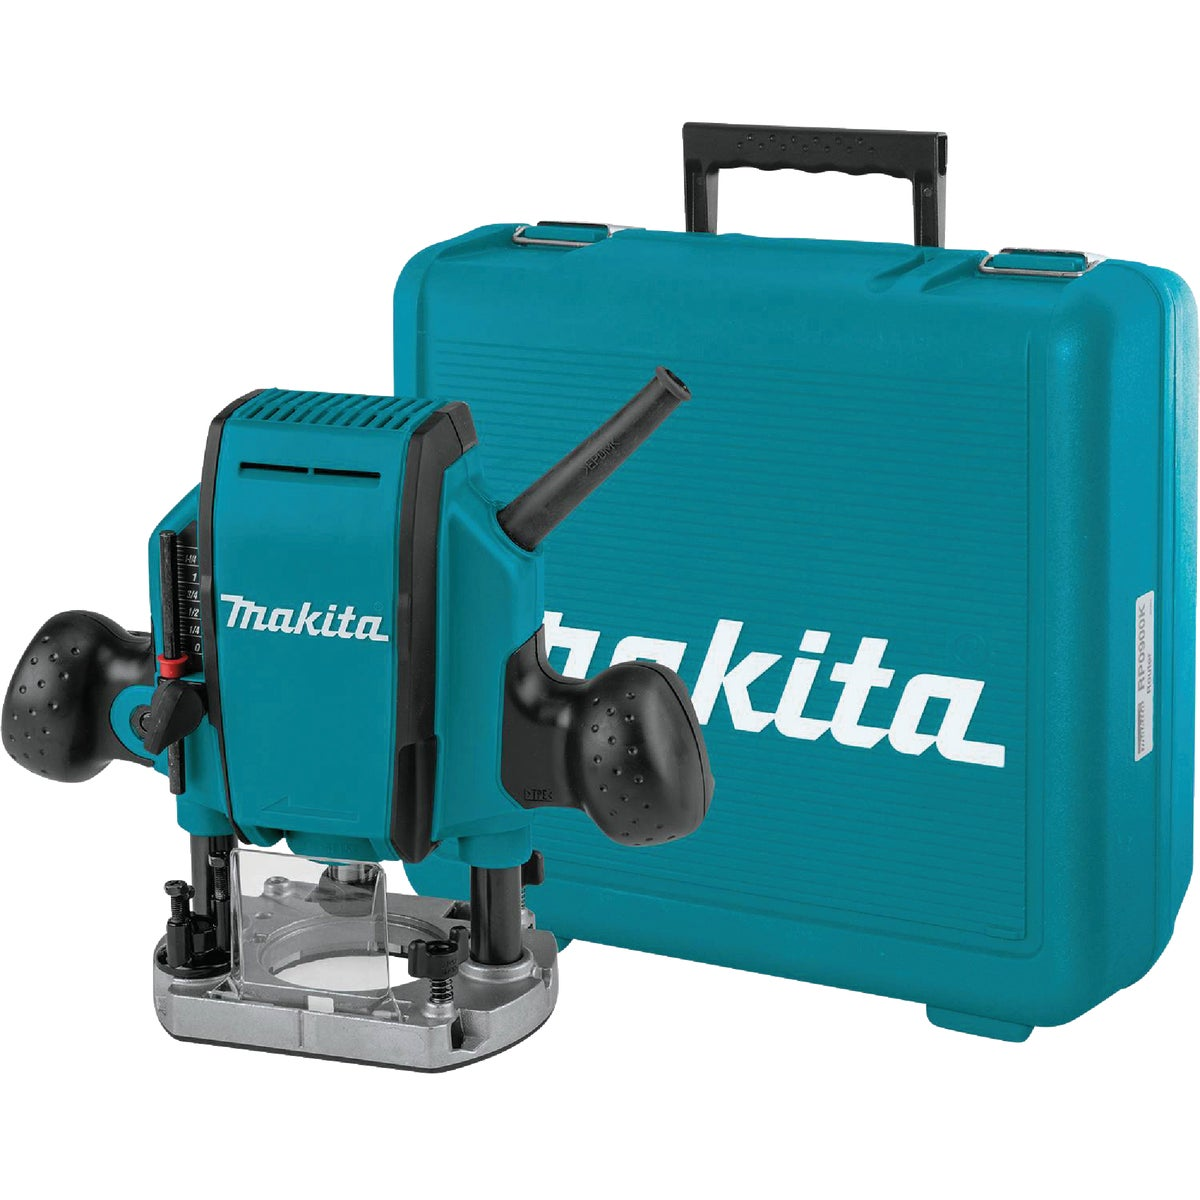 1-1/4HP PLUNGE ROUTER - RP0900K by Makita Usa Inc